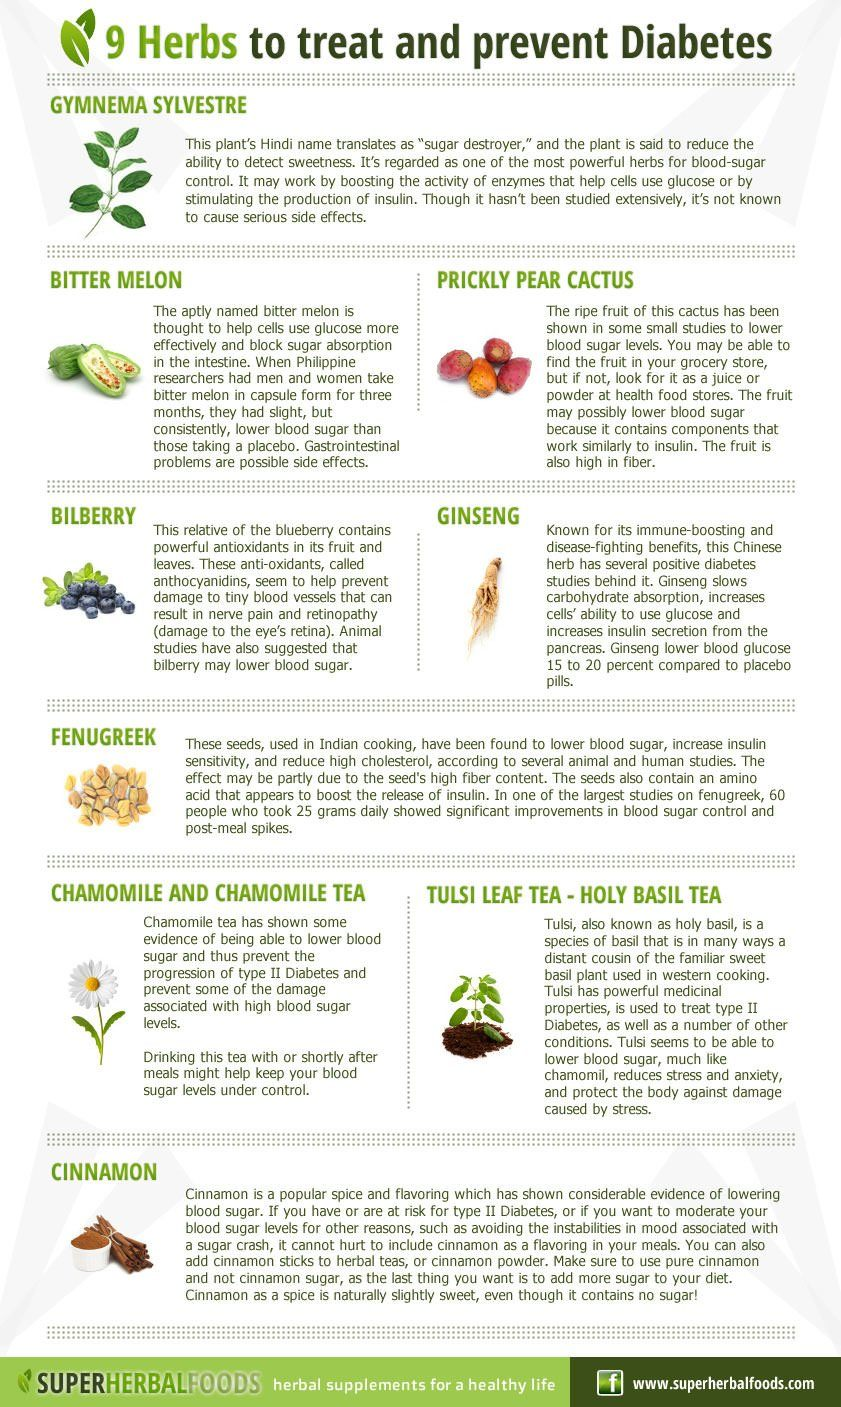 9 Herbs To Treat And Prevent Diabetes Infographic